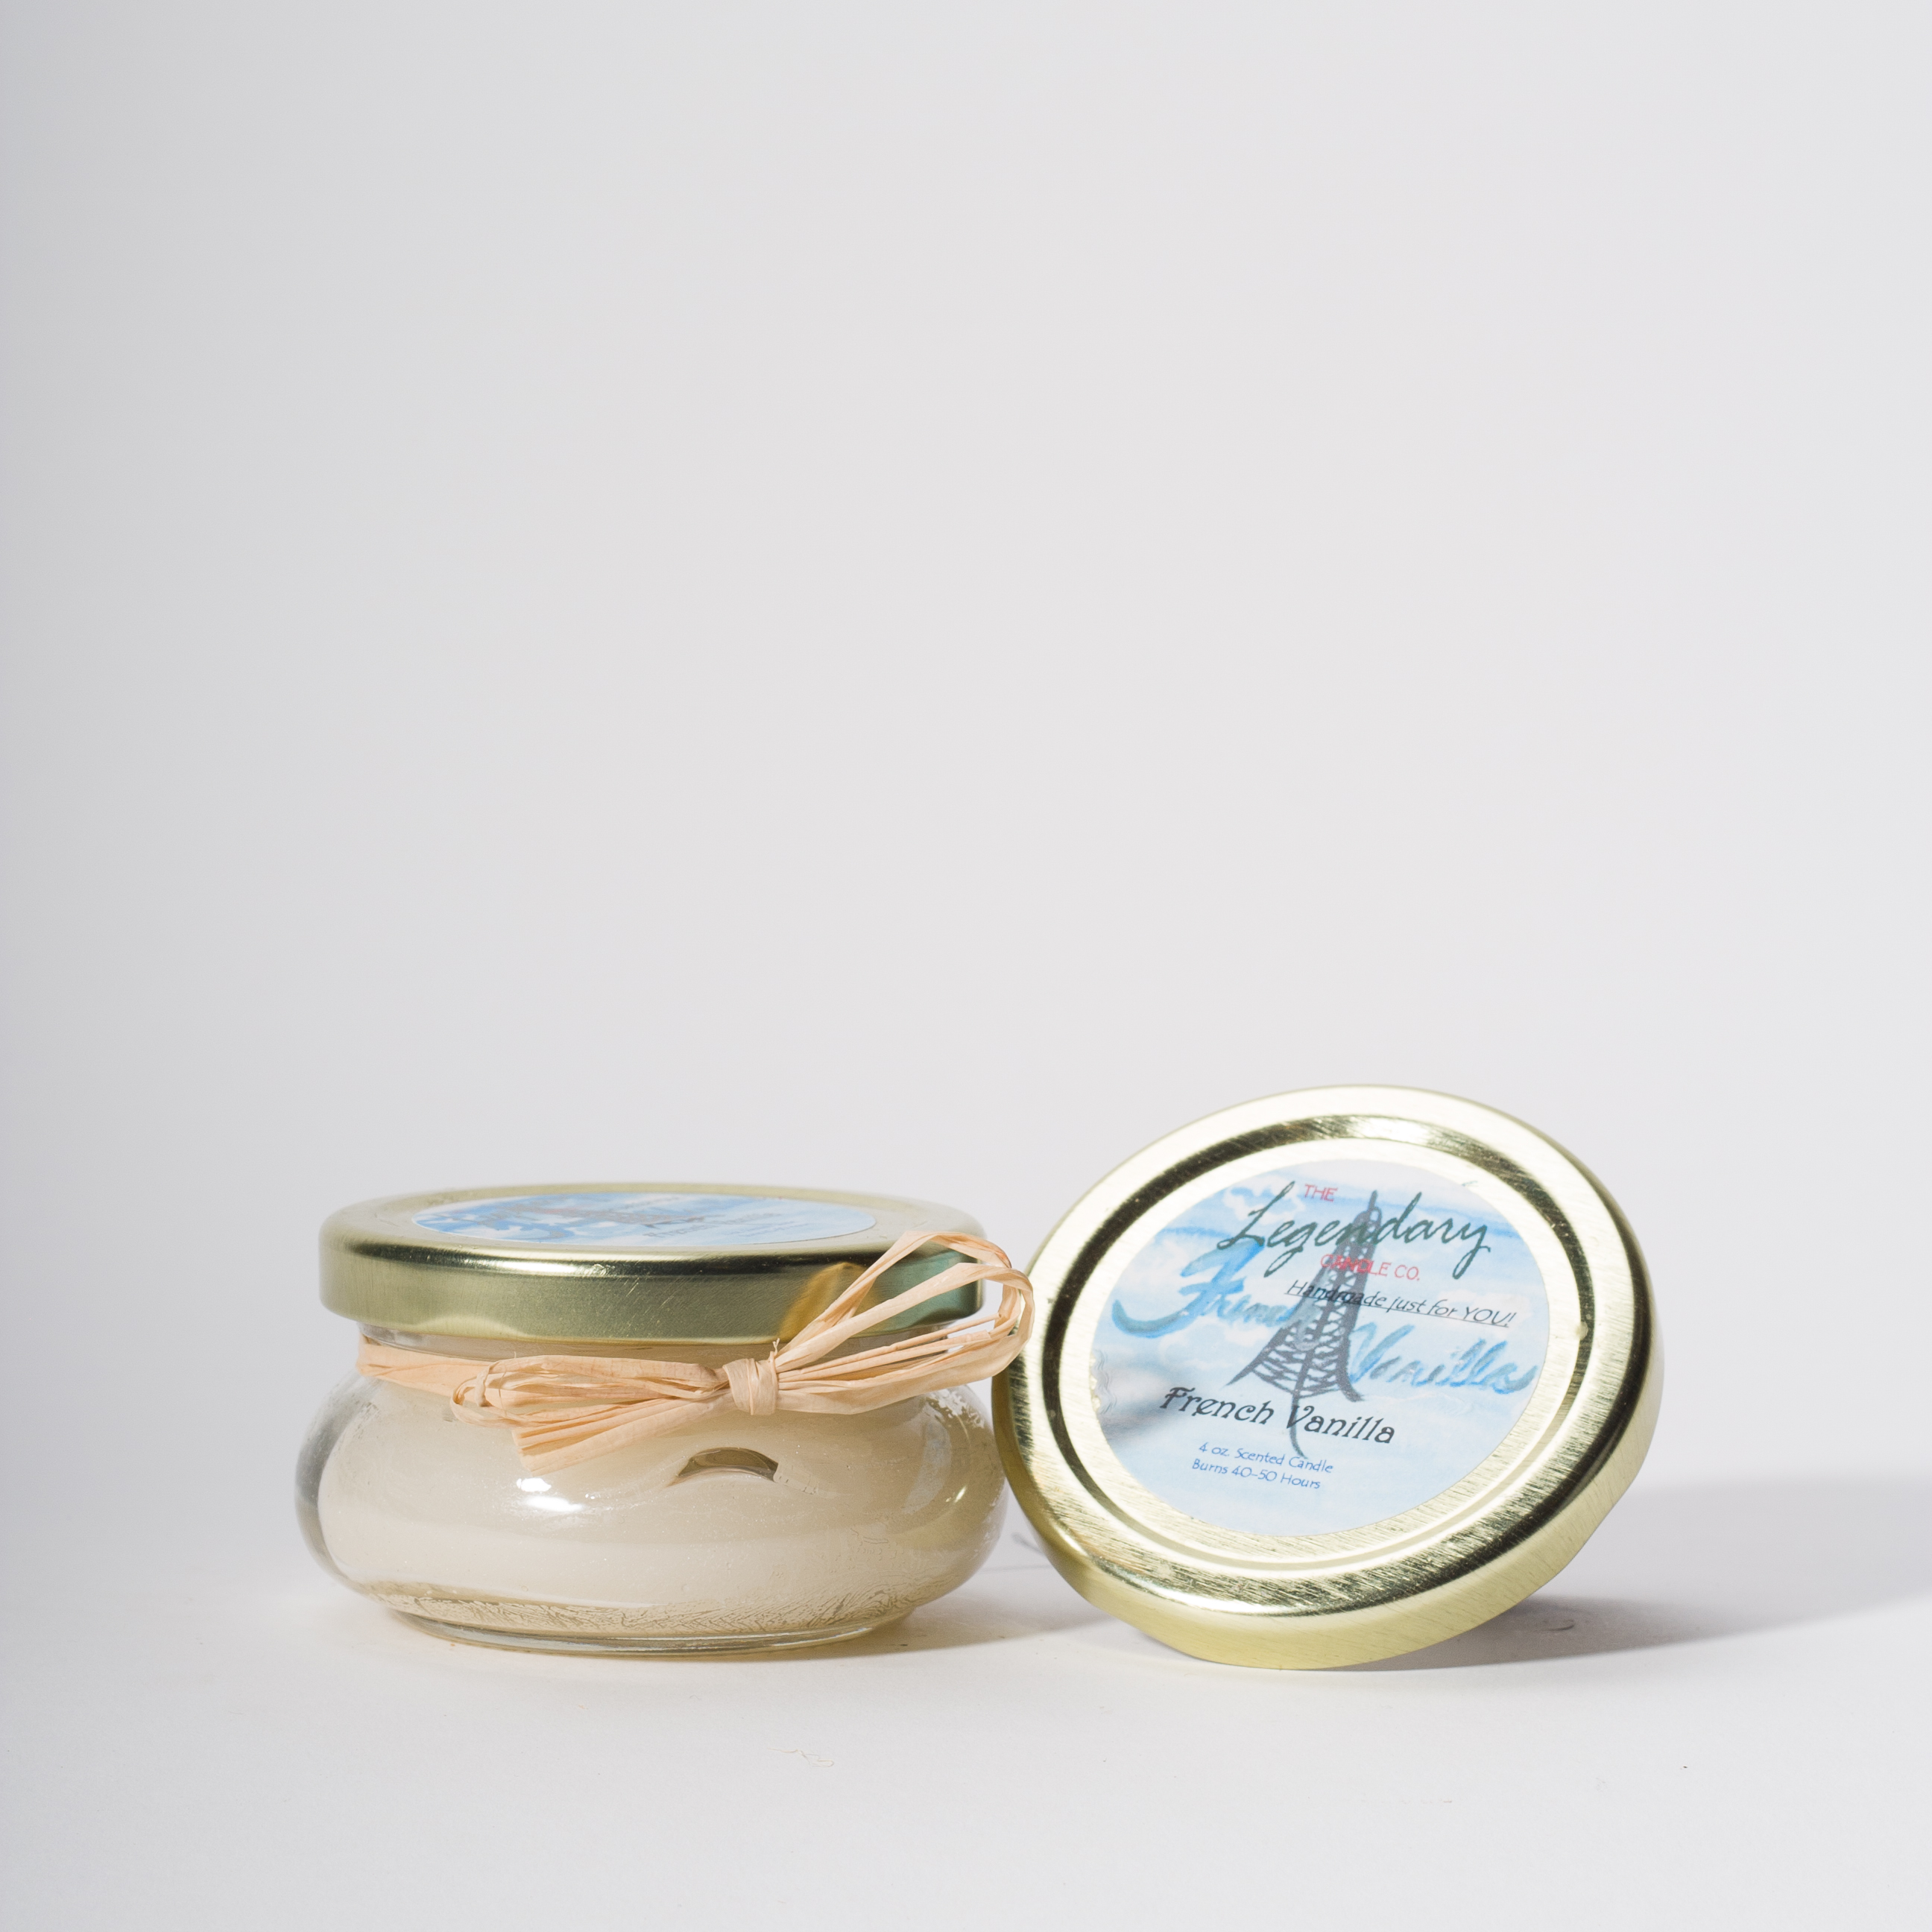 4 Ounce French Vanilla Scented Tureen Jar Candle